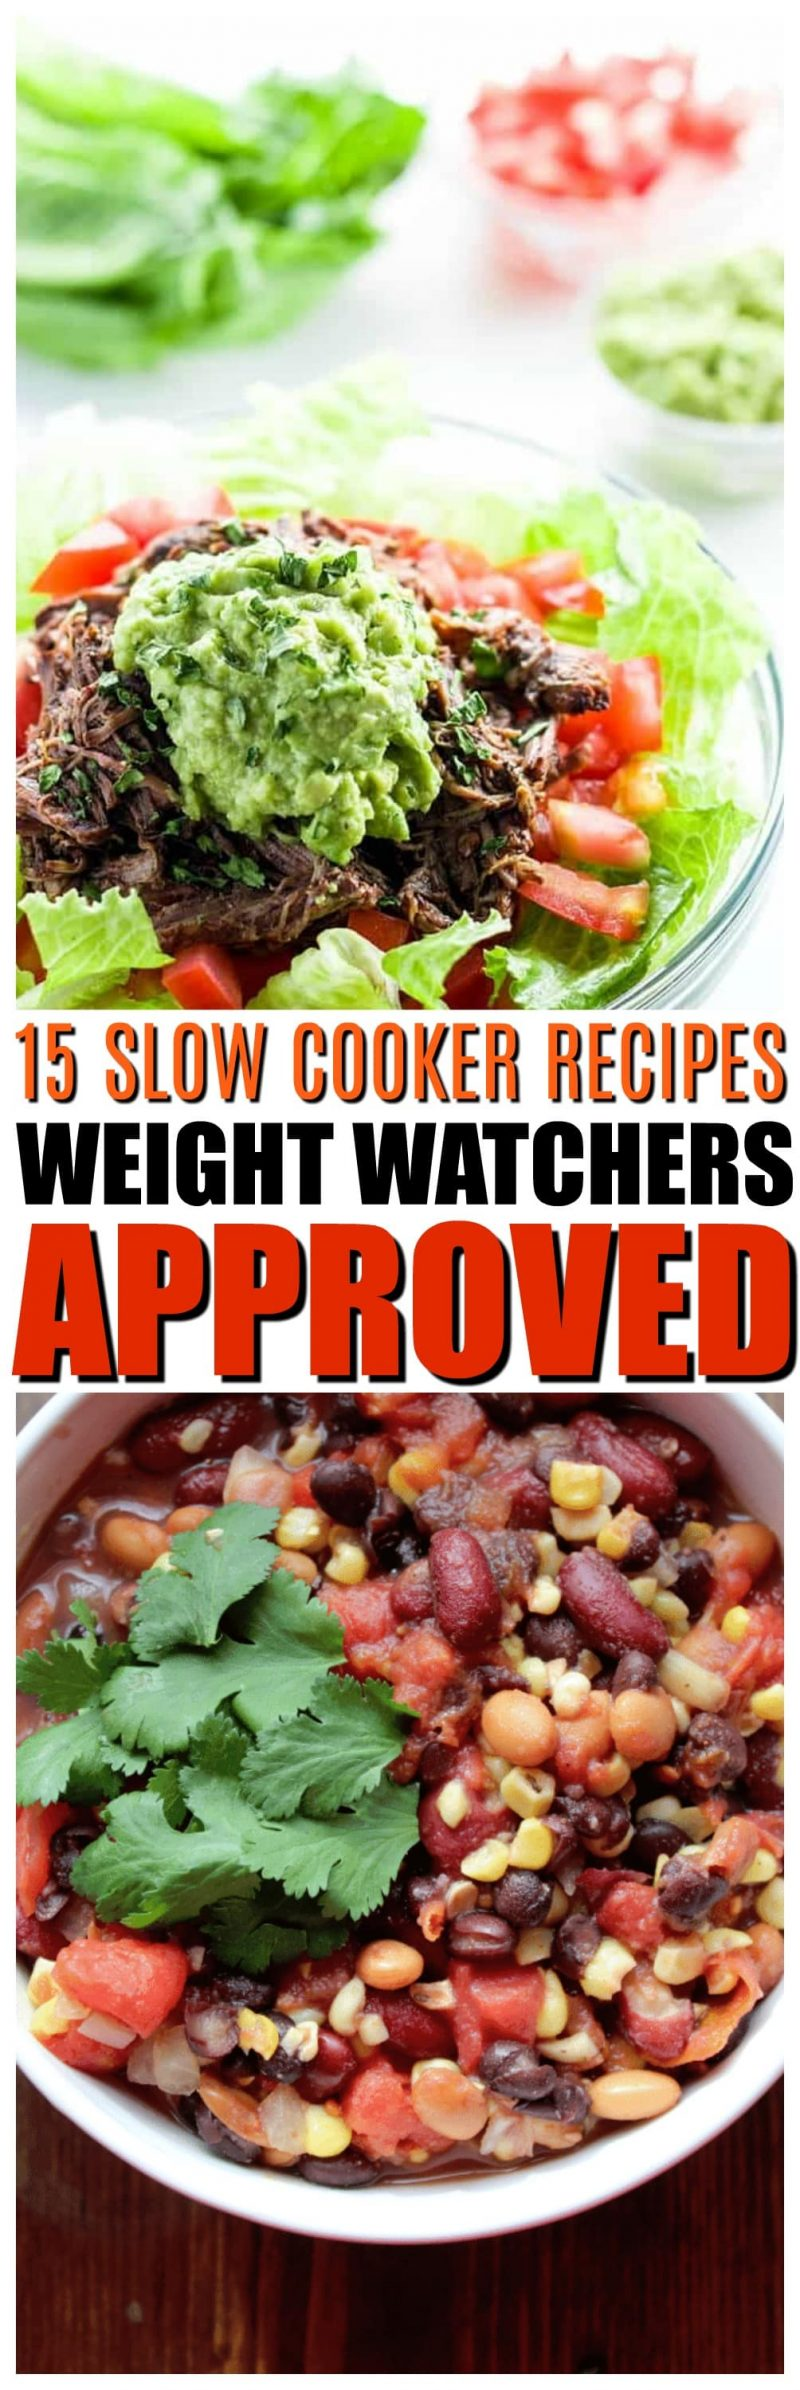 15 Weight Watcher Approved Slow Cooker Recipes